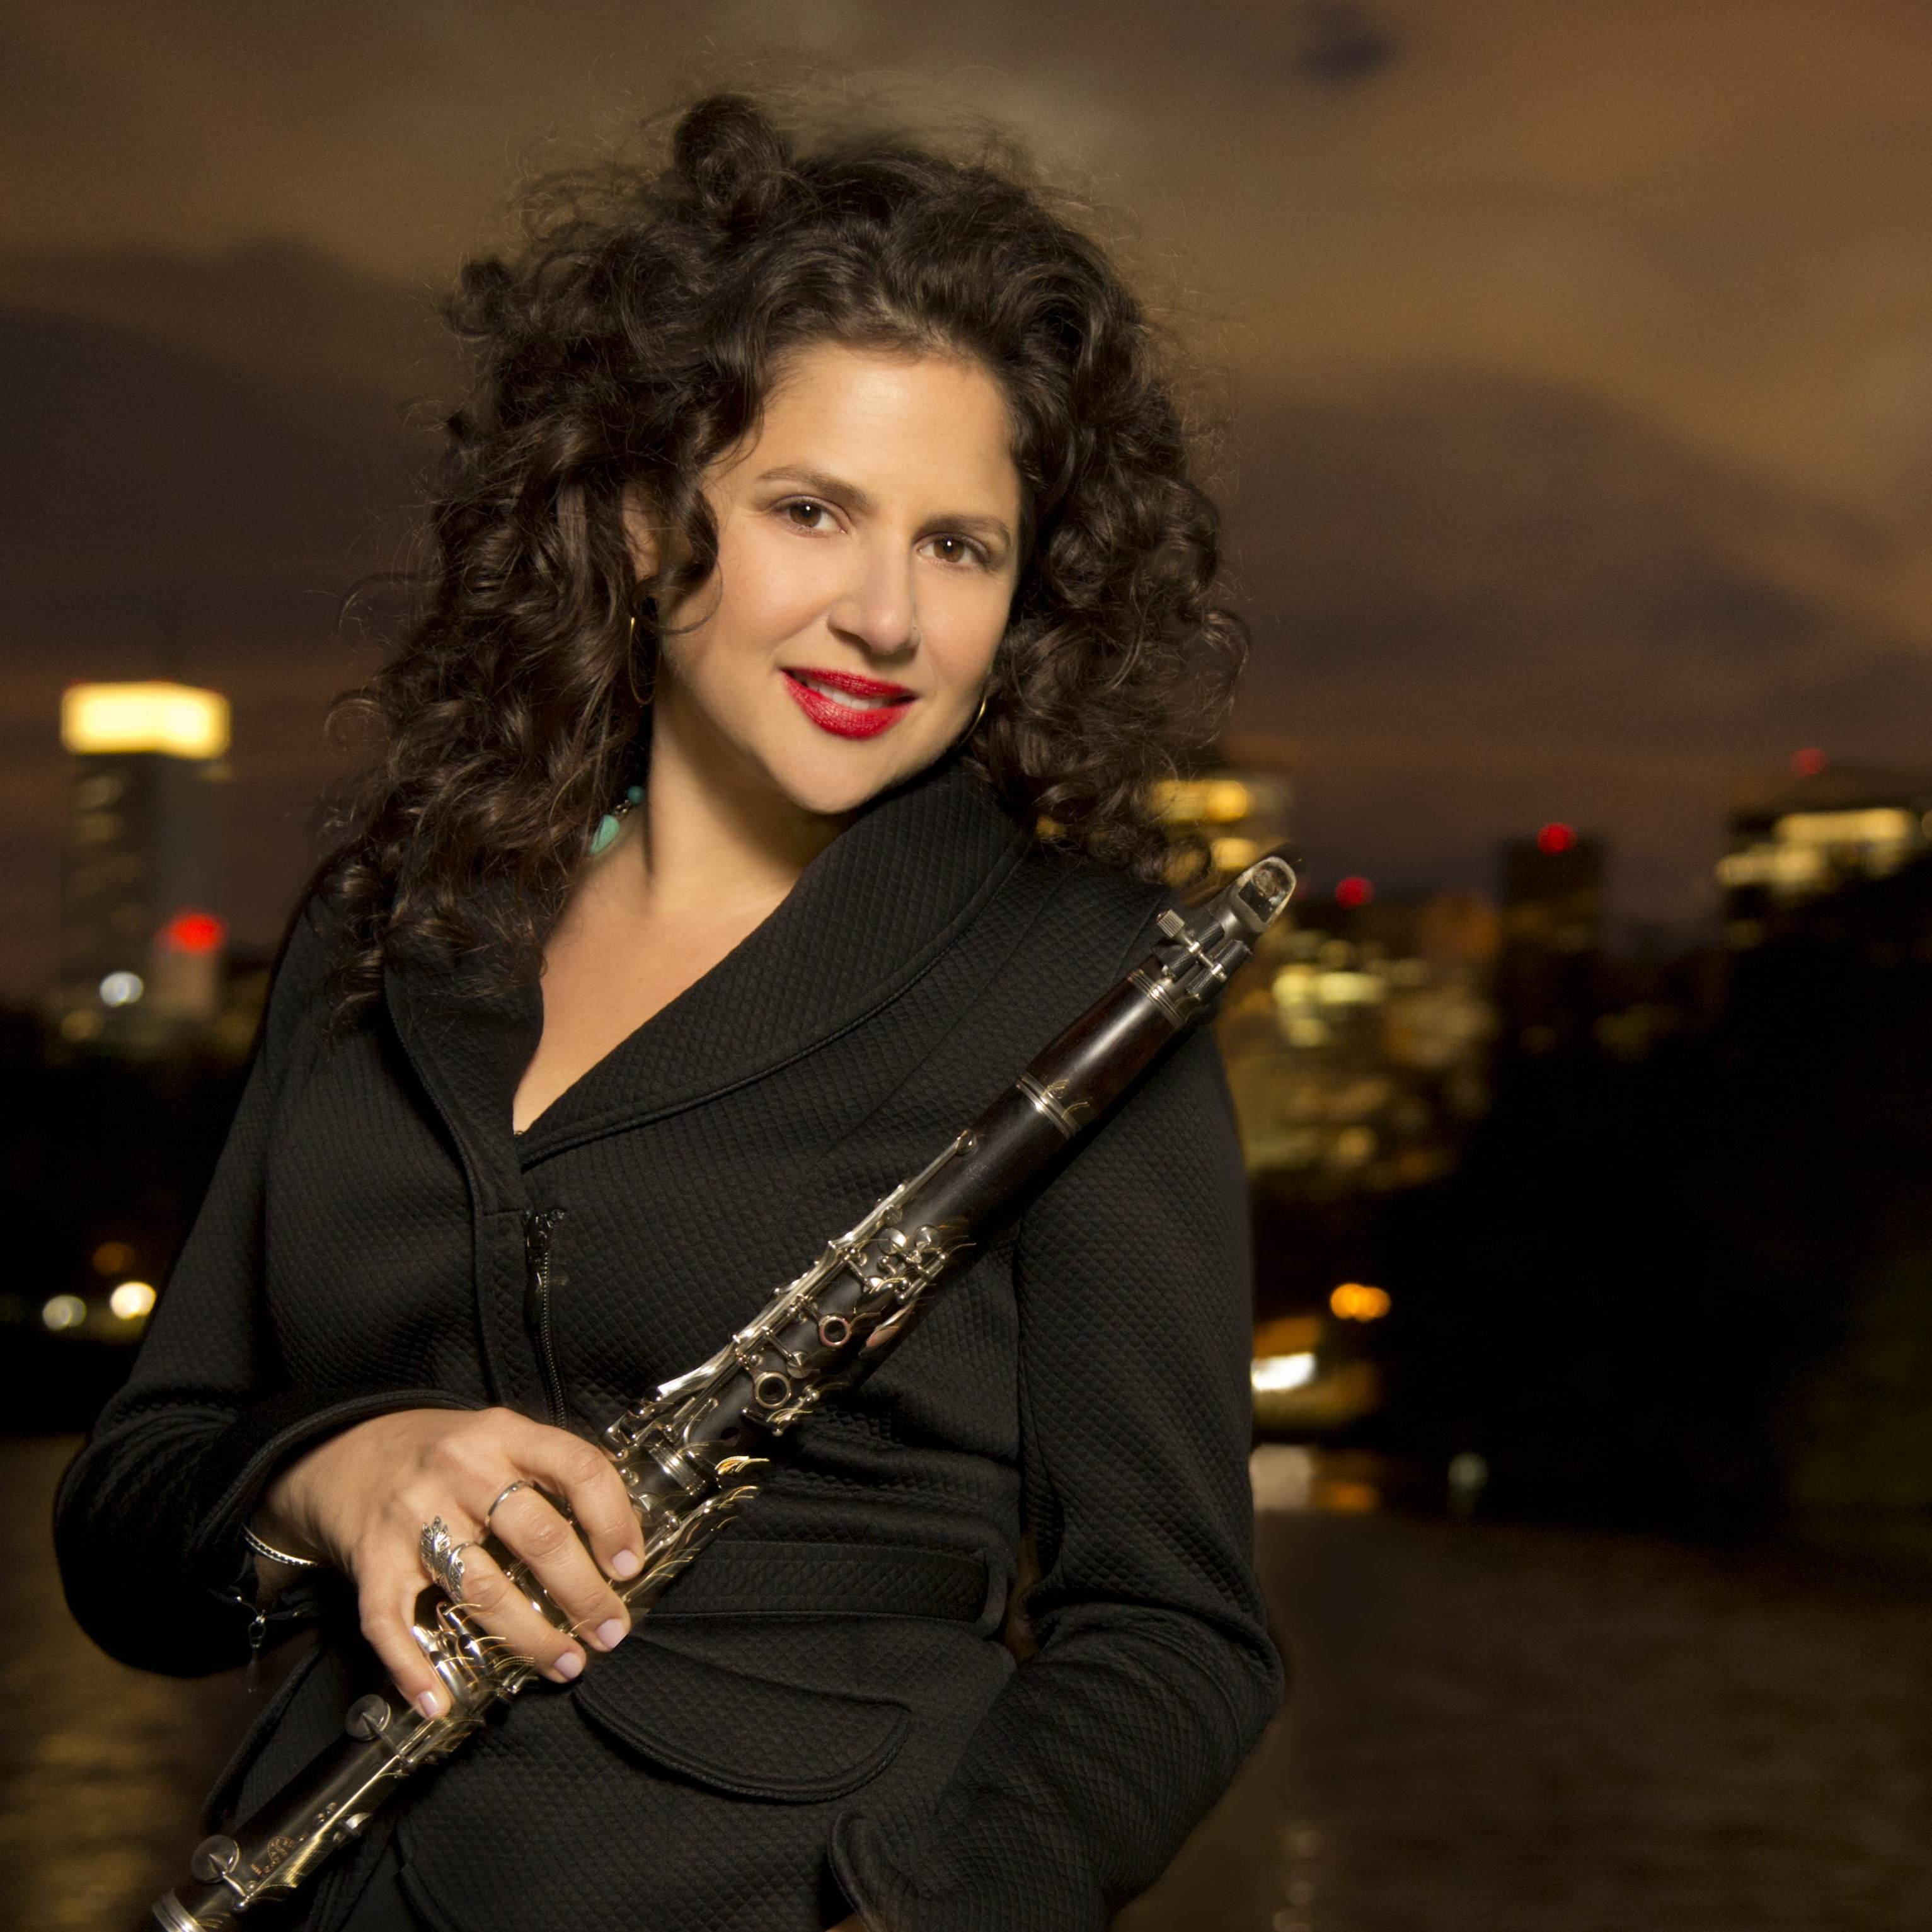 Jazz clarinetist Anat Cohen has a new album out called Claroscuro.